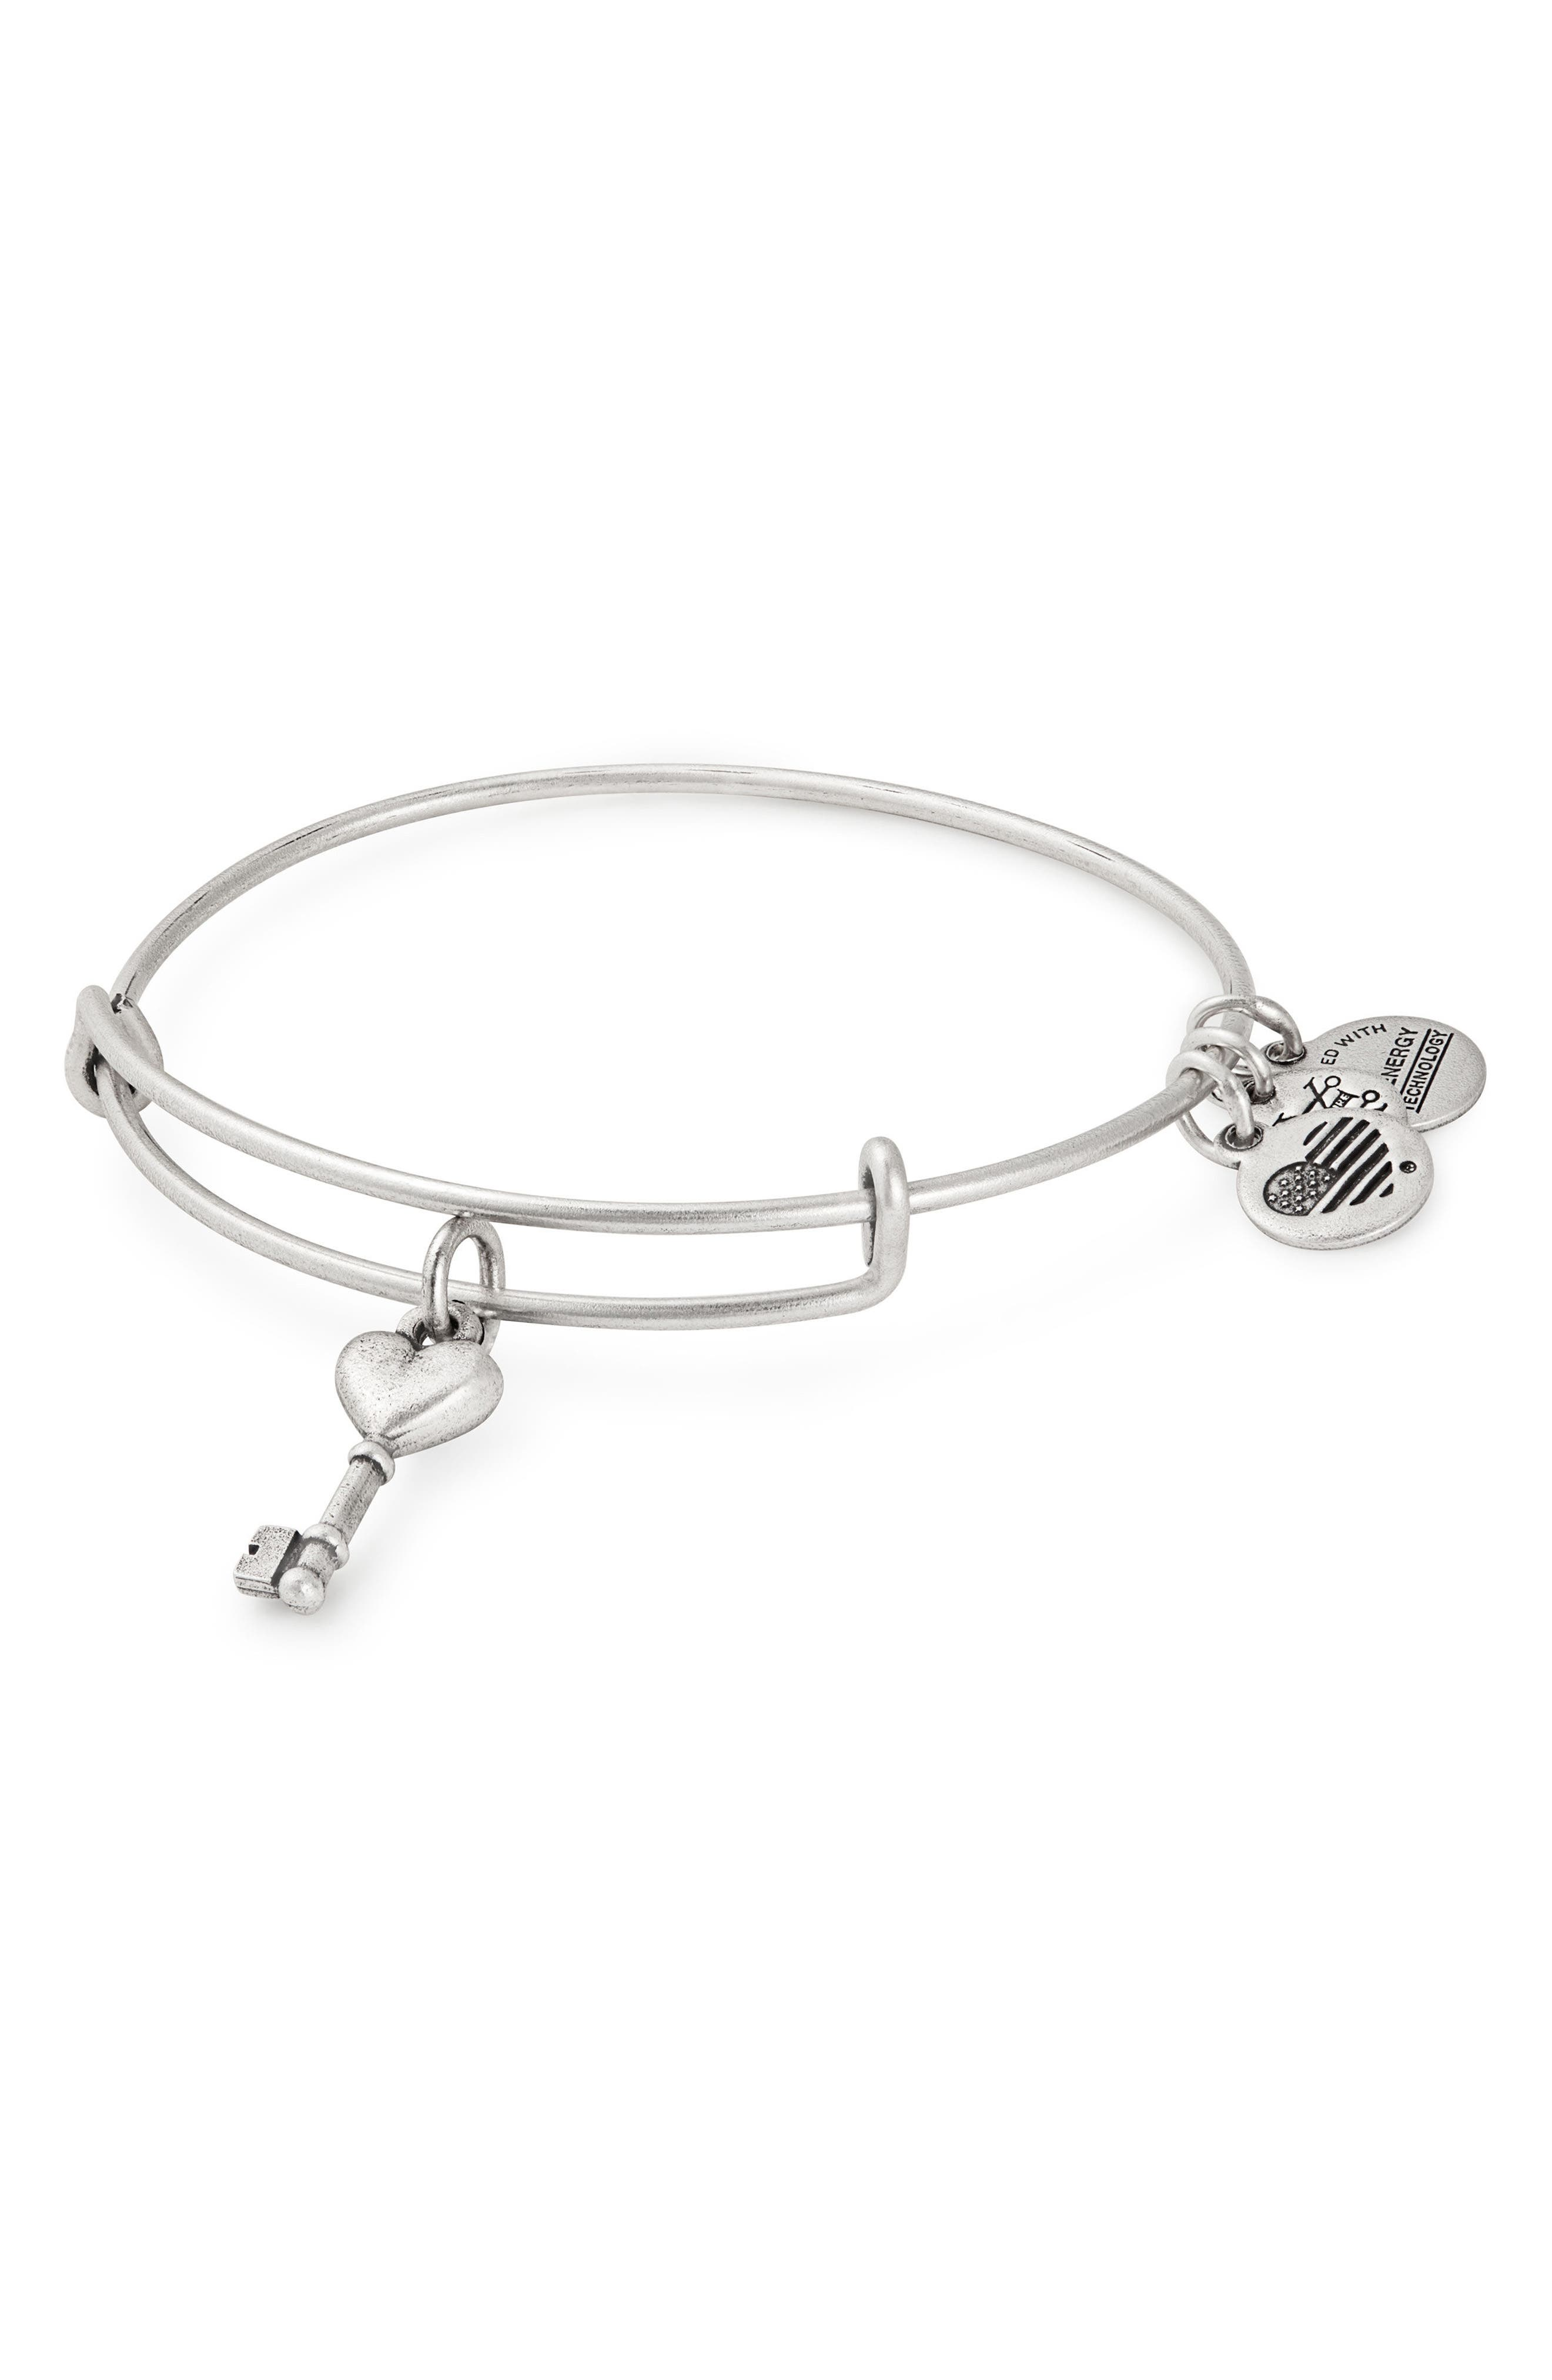 Key to Love Adjustable Wire Bangle,                             Main thumbnail 1, color,                             040